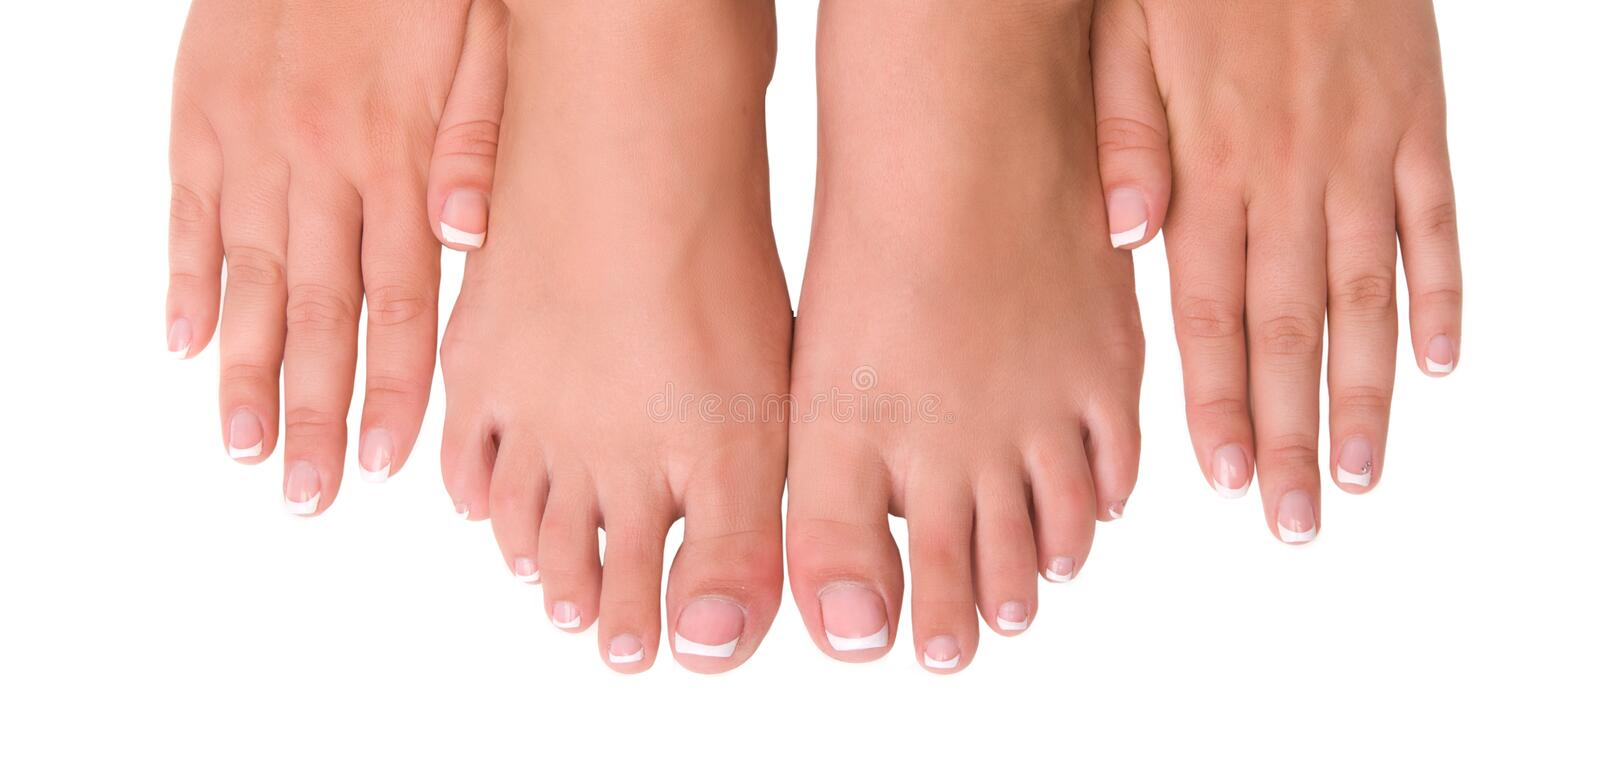 Nail care for women's hands and feet royalty free stock image